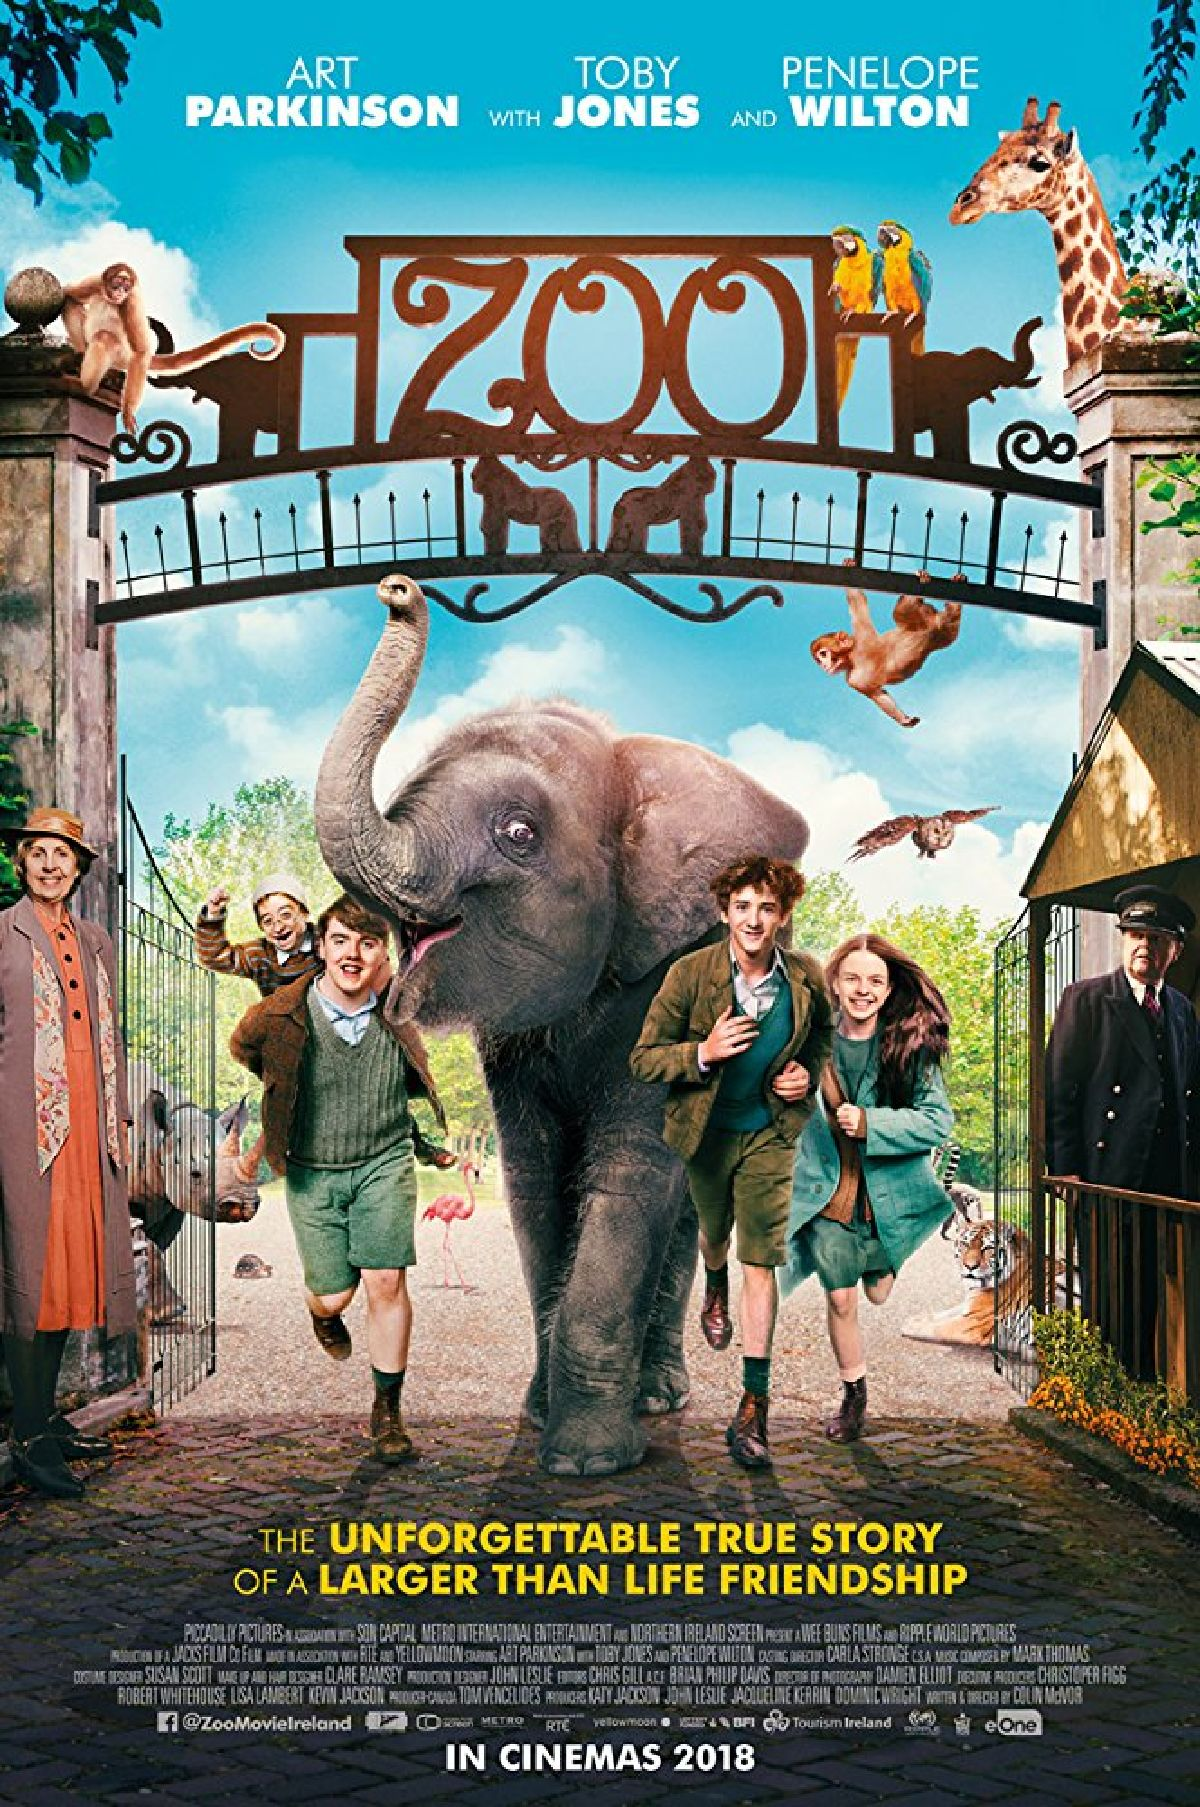 'Zoo' movie poster